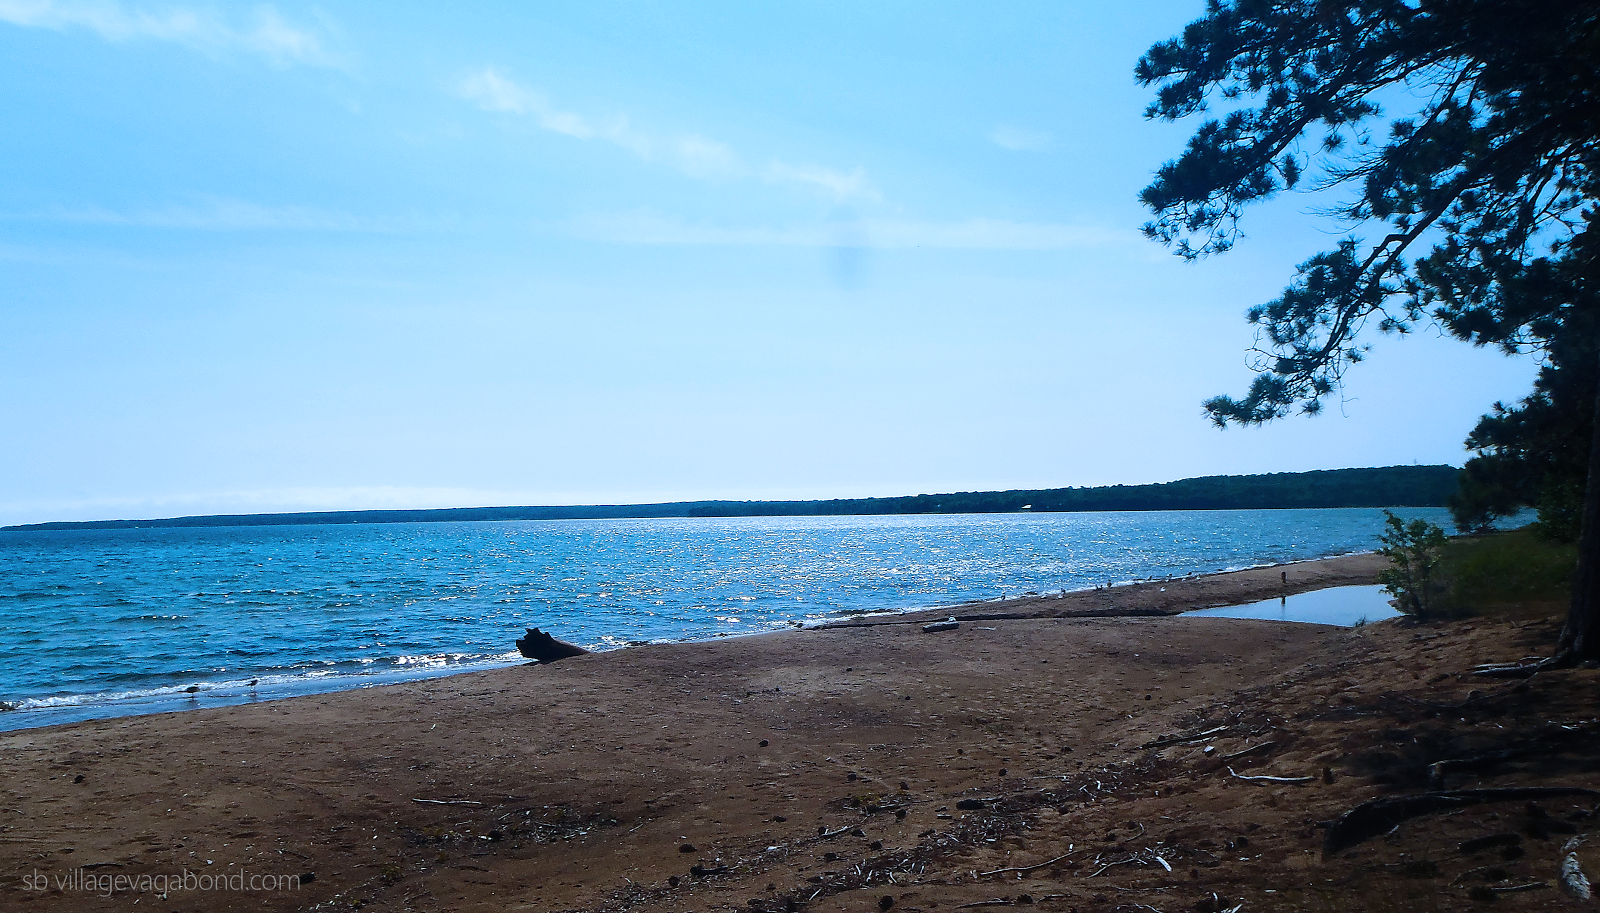 Lake Superior sparkles in the sun at Batchawana Bay Provincial Park.